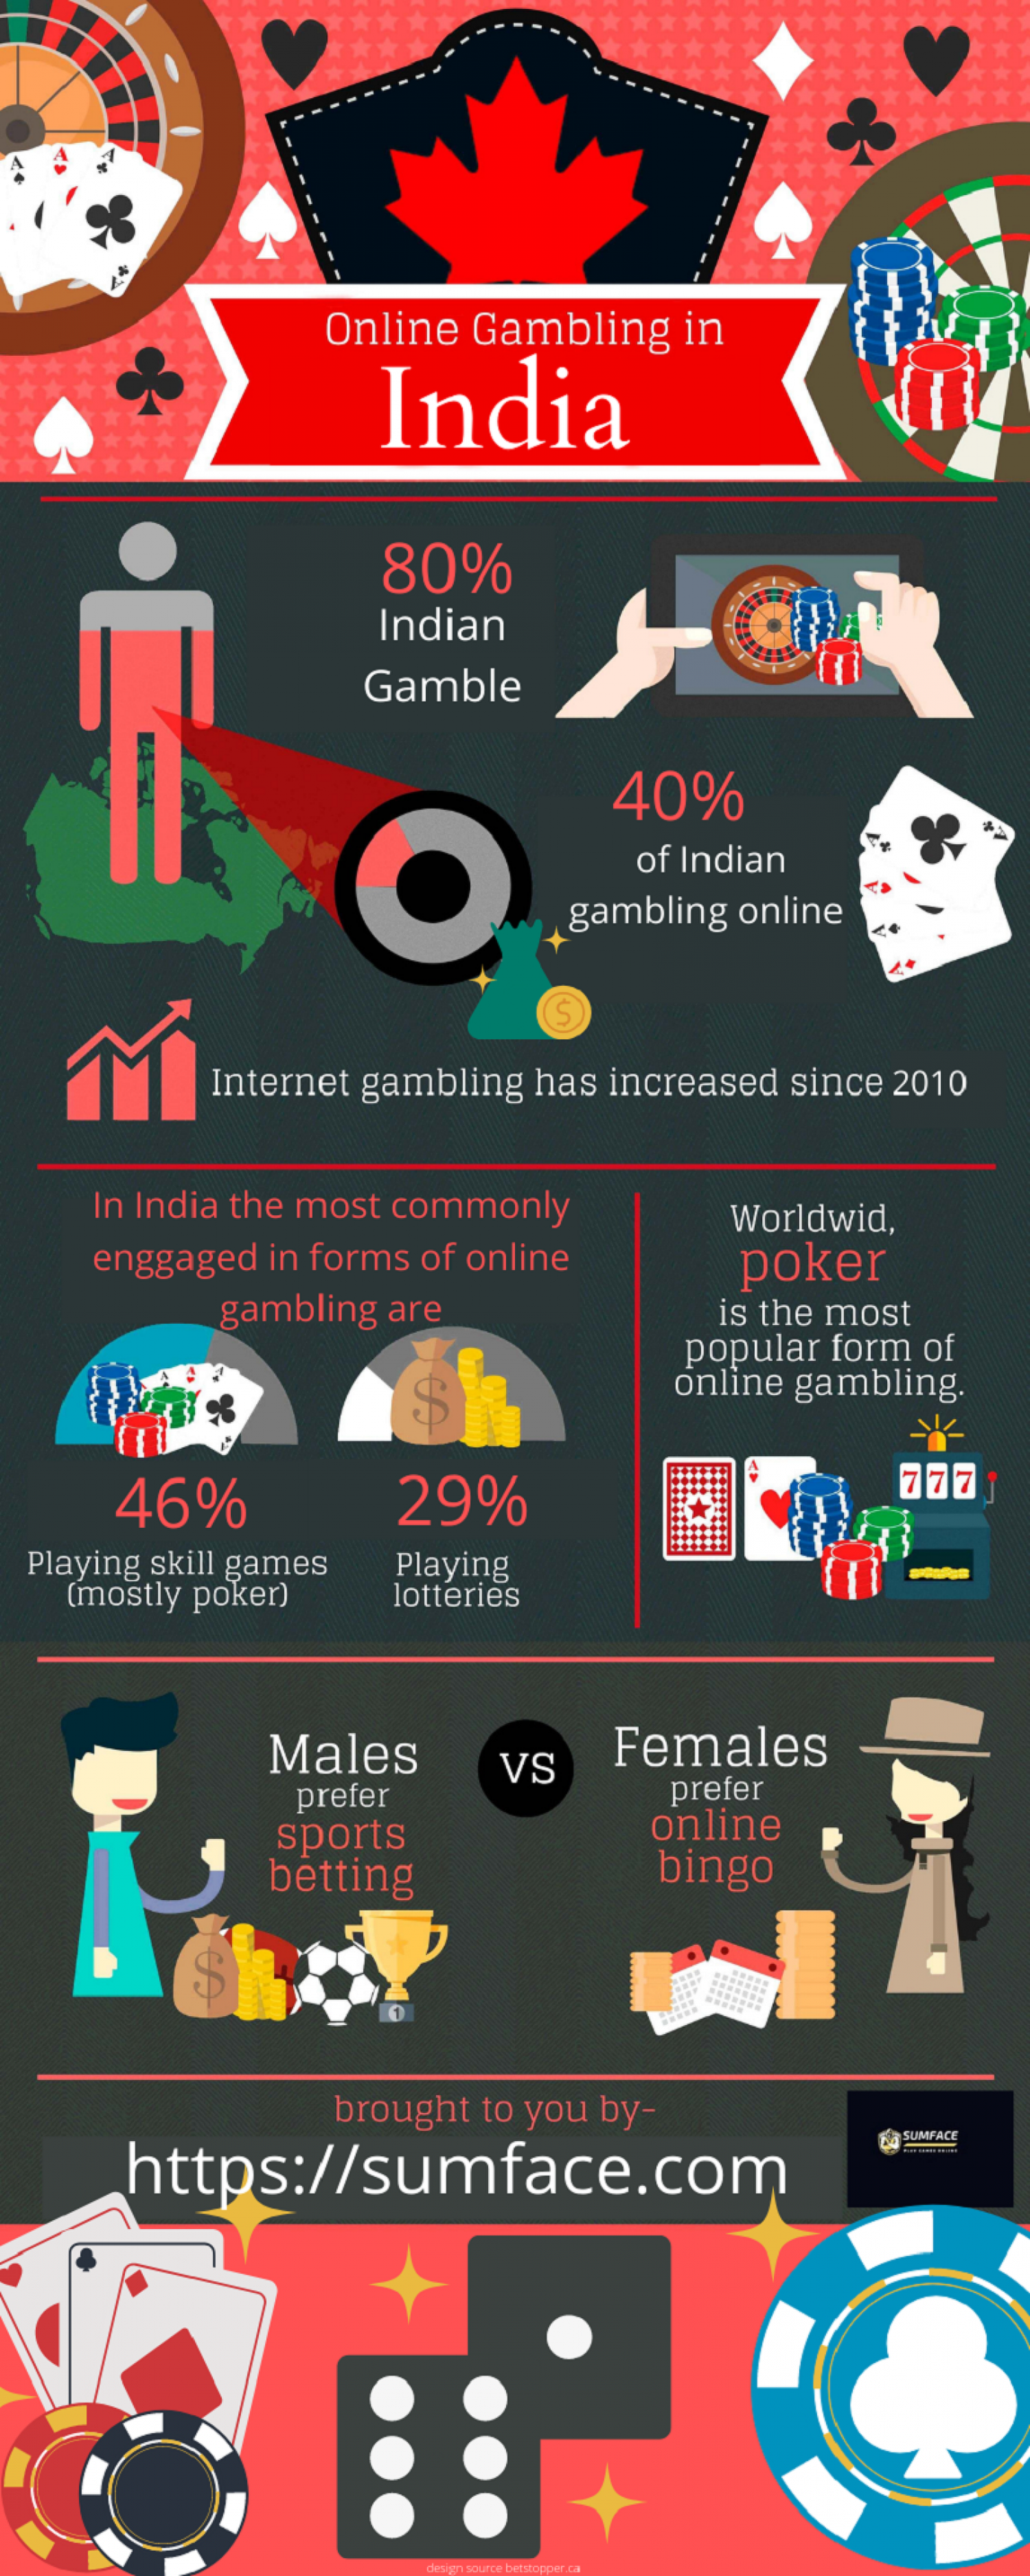 Best Gambling Sites in India - SumFace Infographic